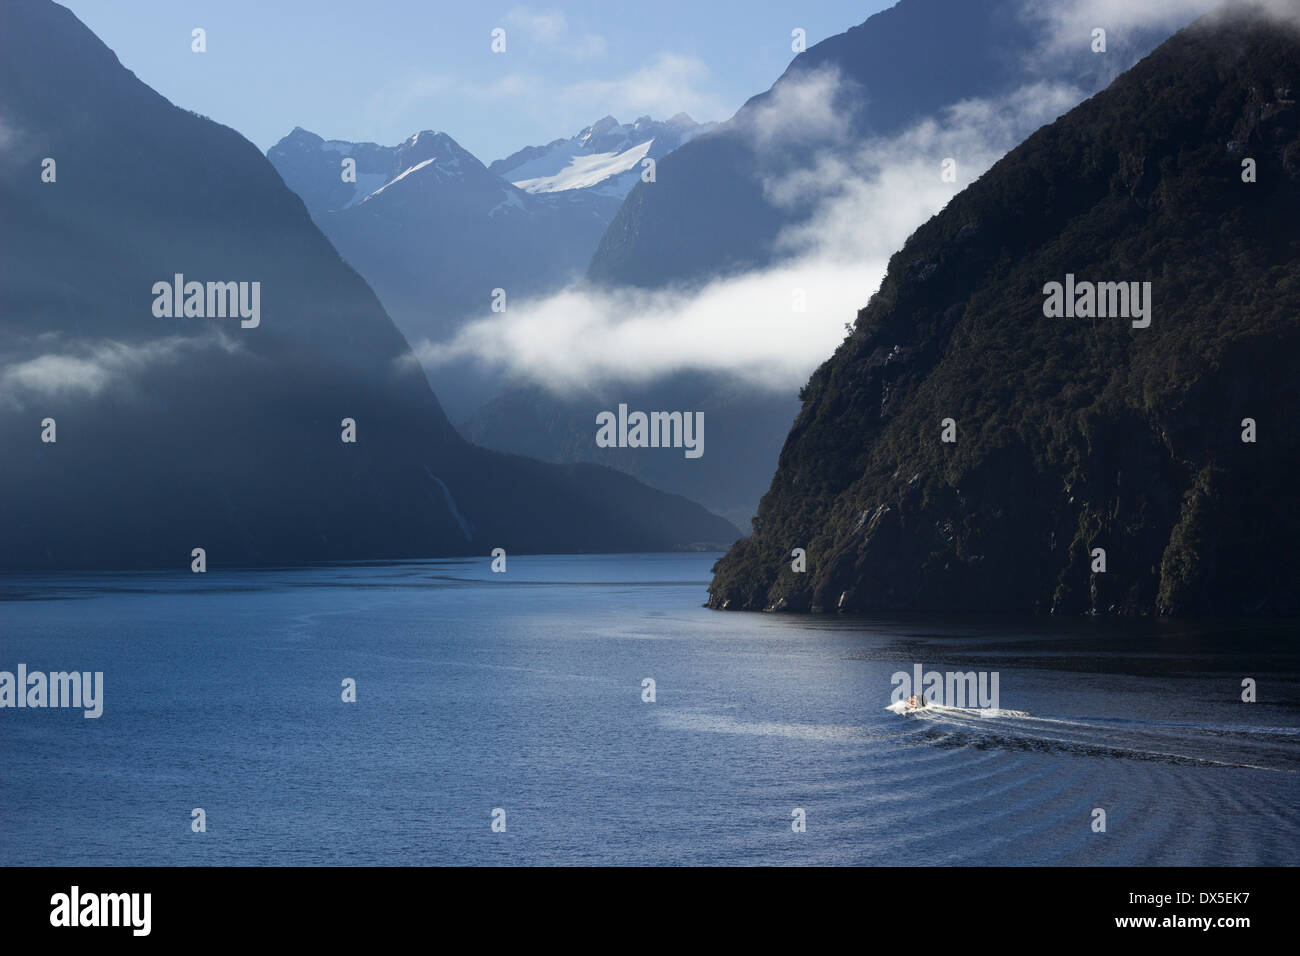 Sailing into Milford Sound, New Zealand in early morning as the sun rises above the mountains - Stock Image